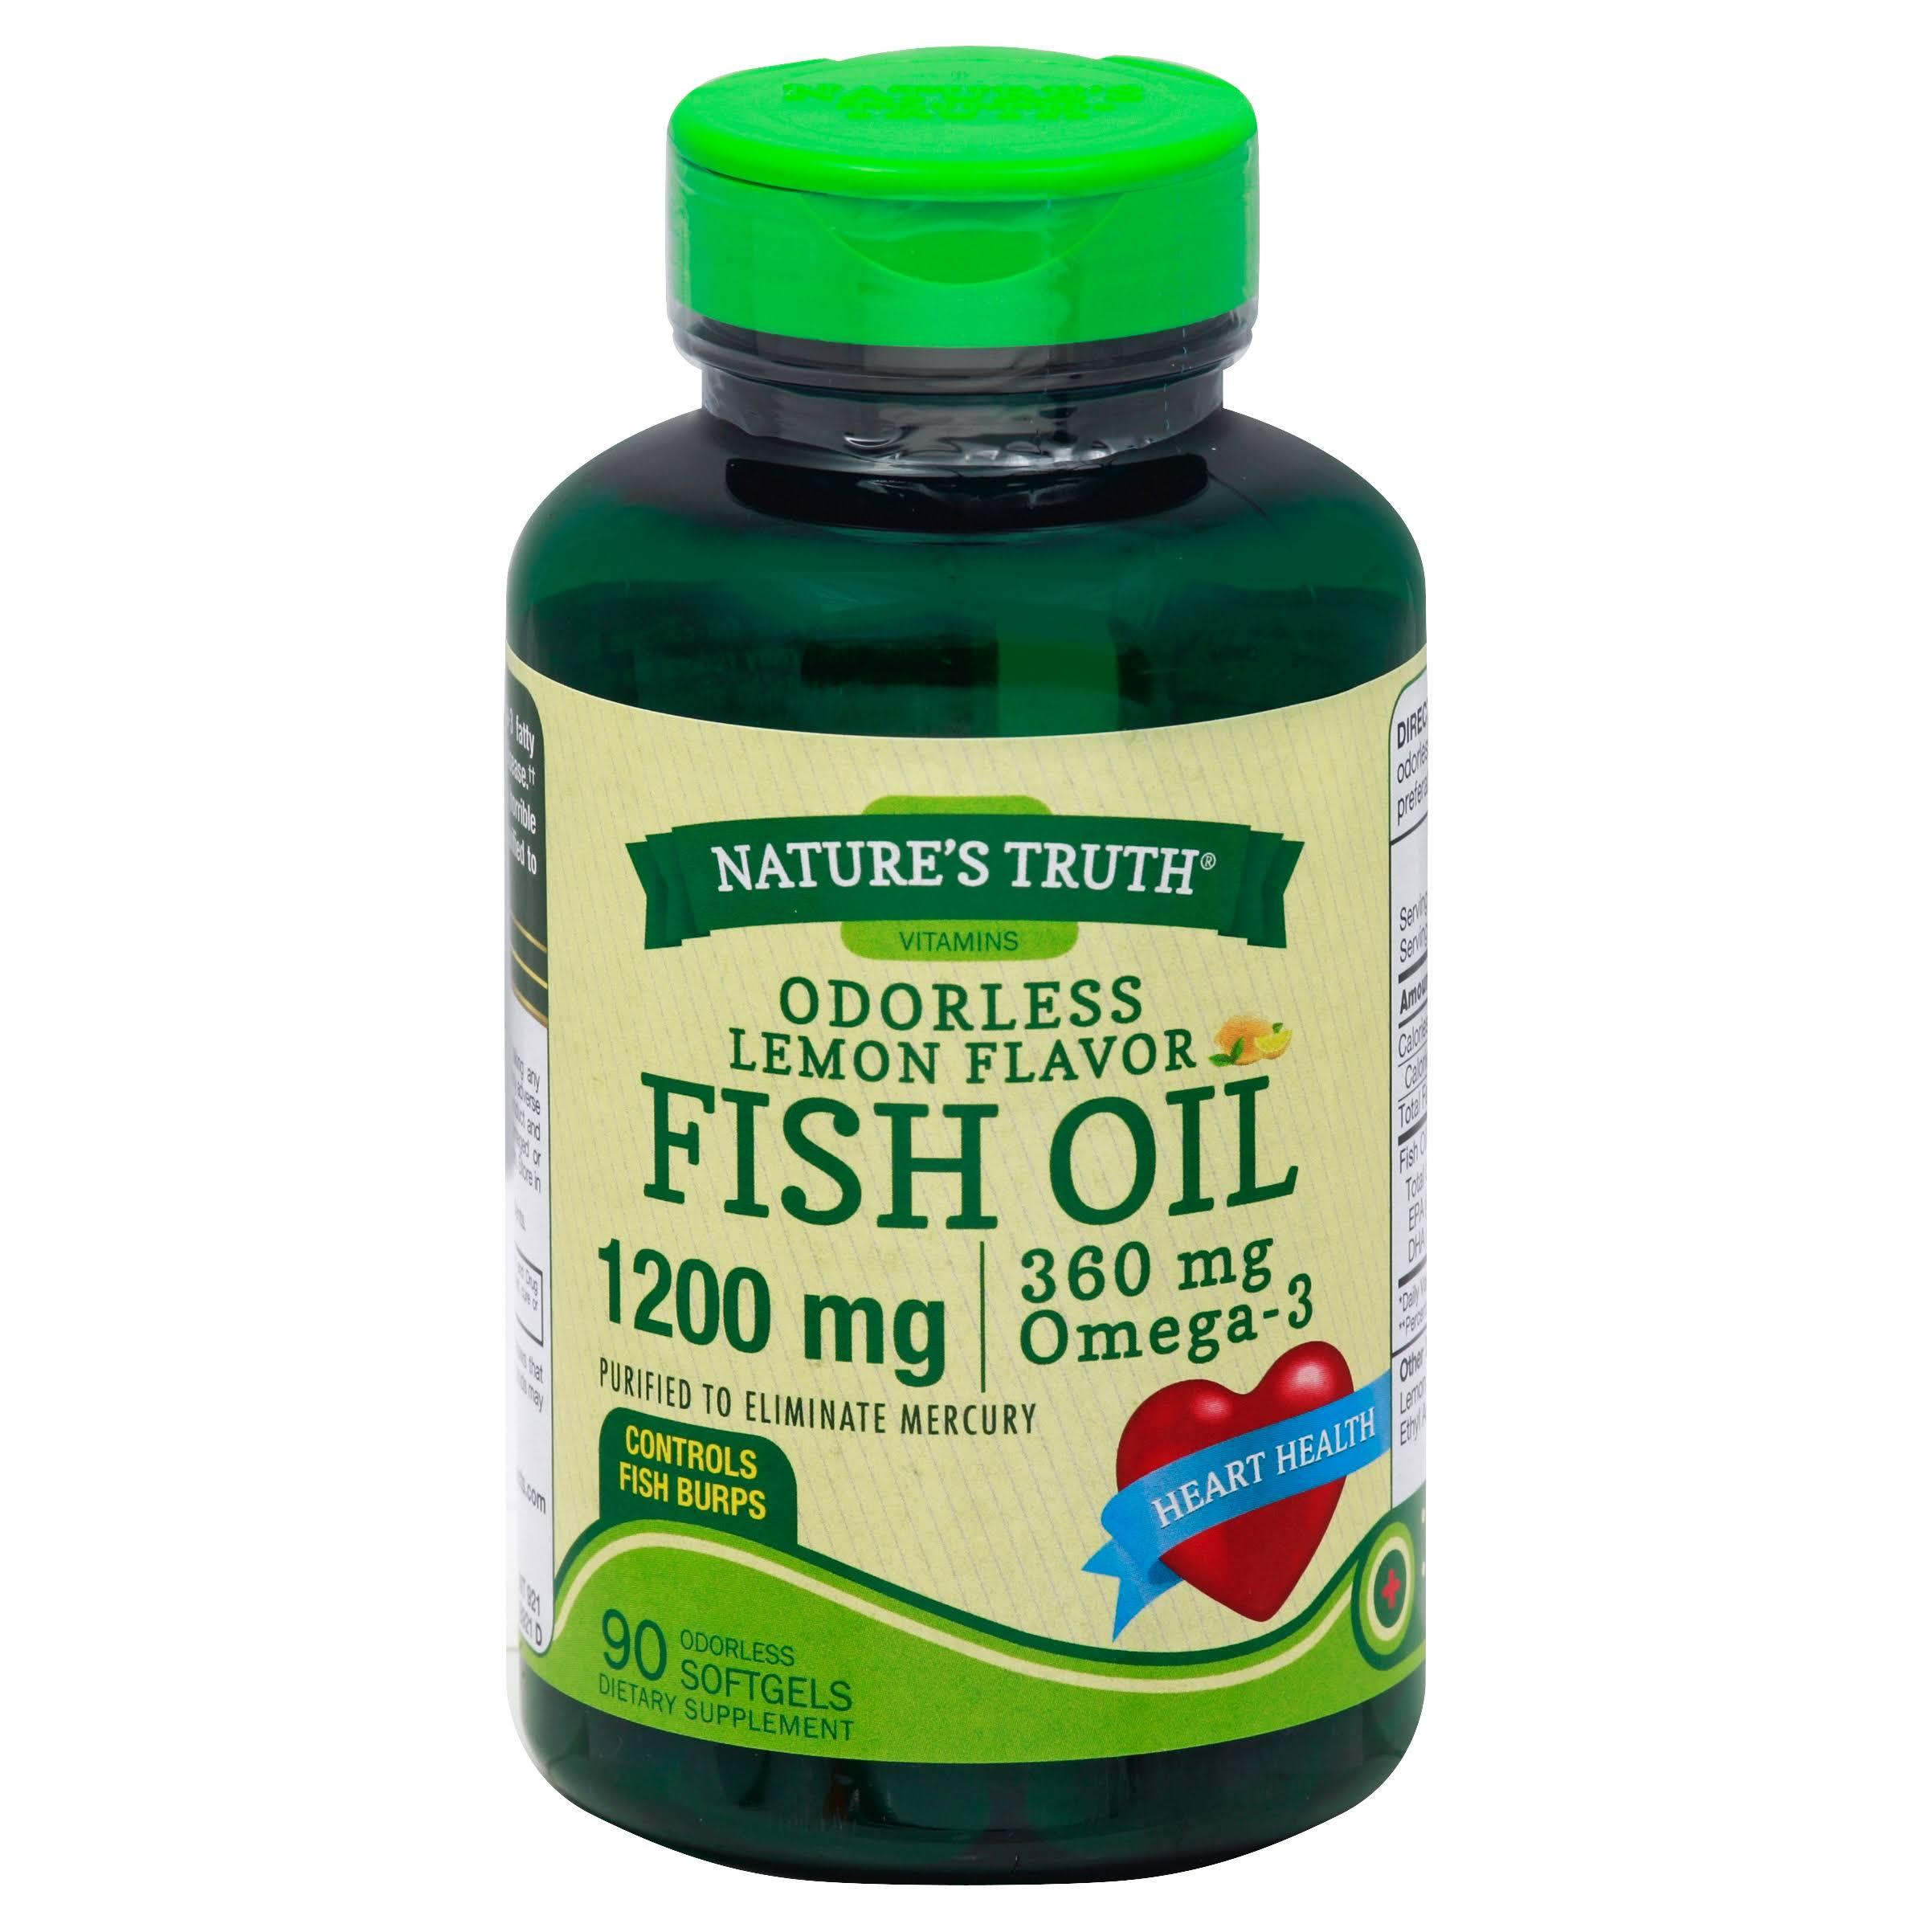 Nature's Truth Fish Oil Capsules - 90ct, 1200 mg, Odorless, Lemon